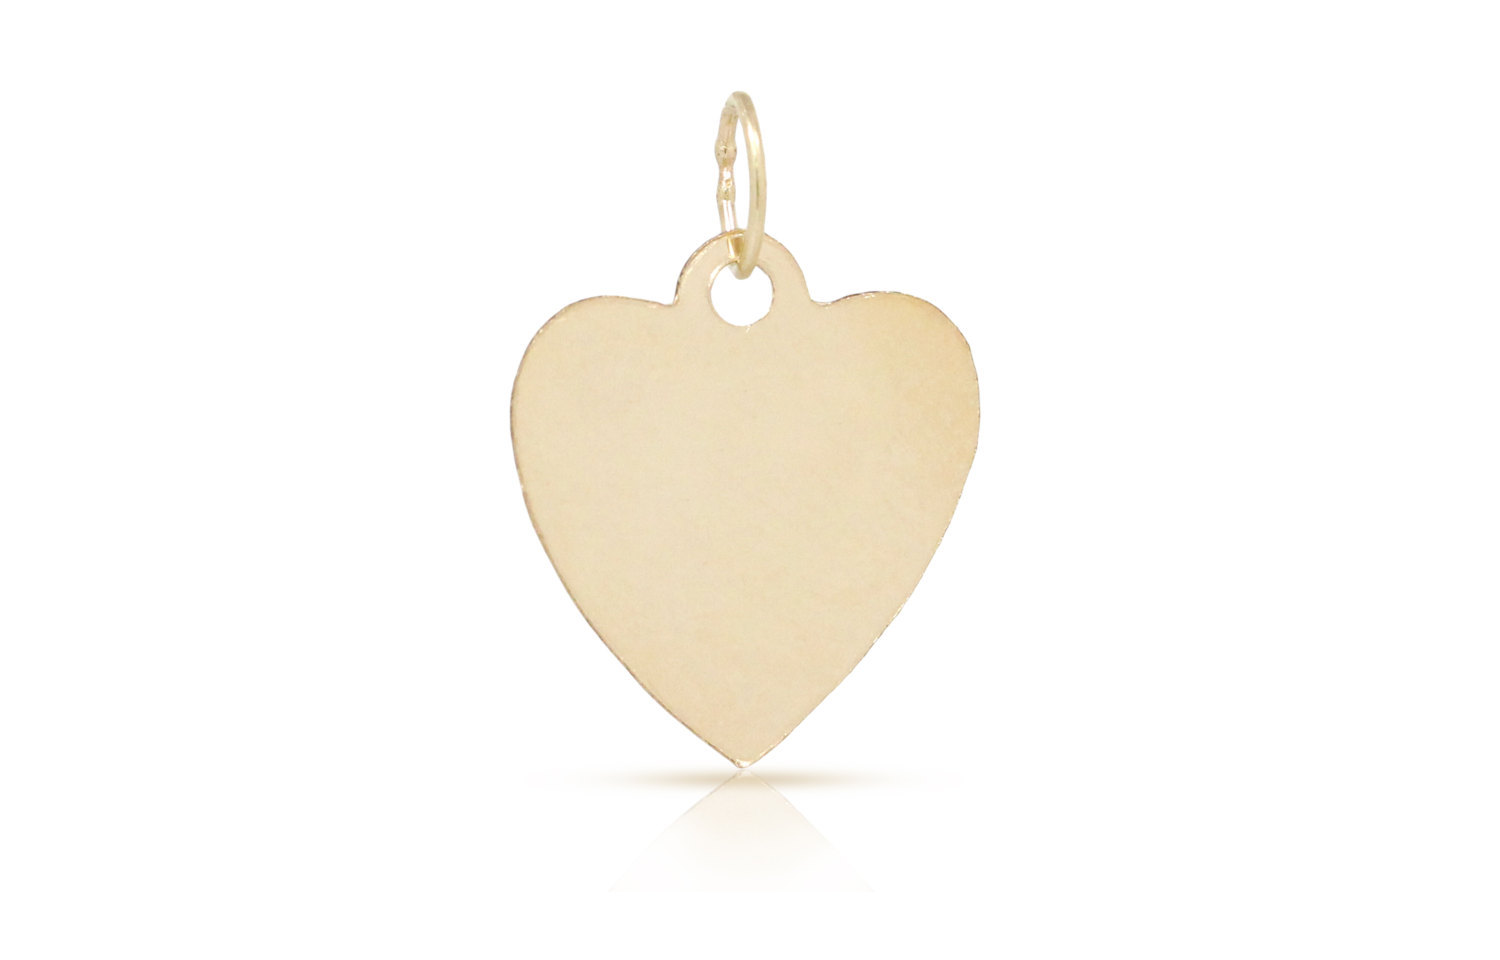 Primary image for Charms, Heart Stamping Tag, 14Kt Gold Filled, 14.8x13.4mm, 2Pcs (3956)/1